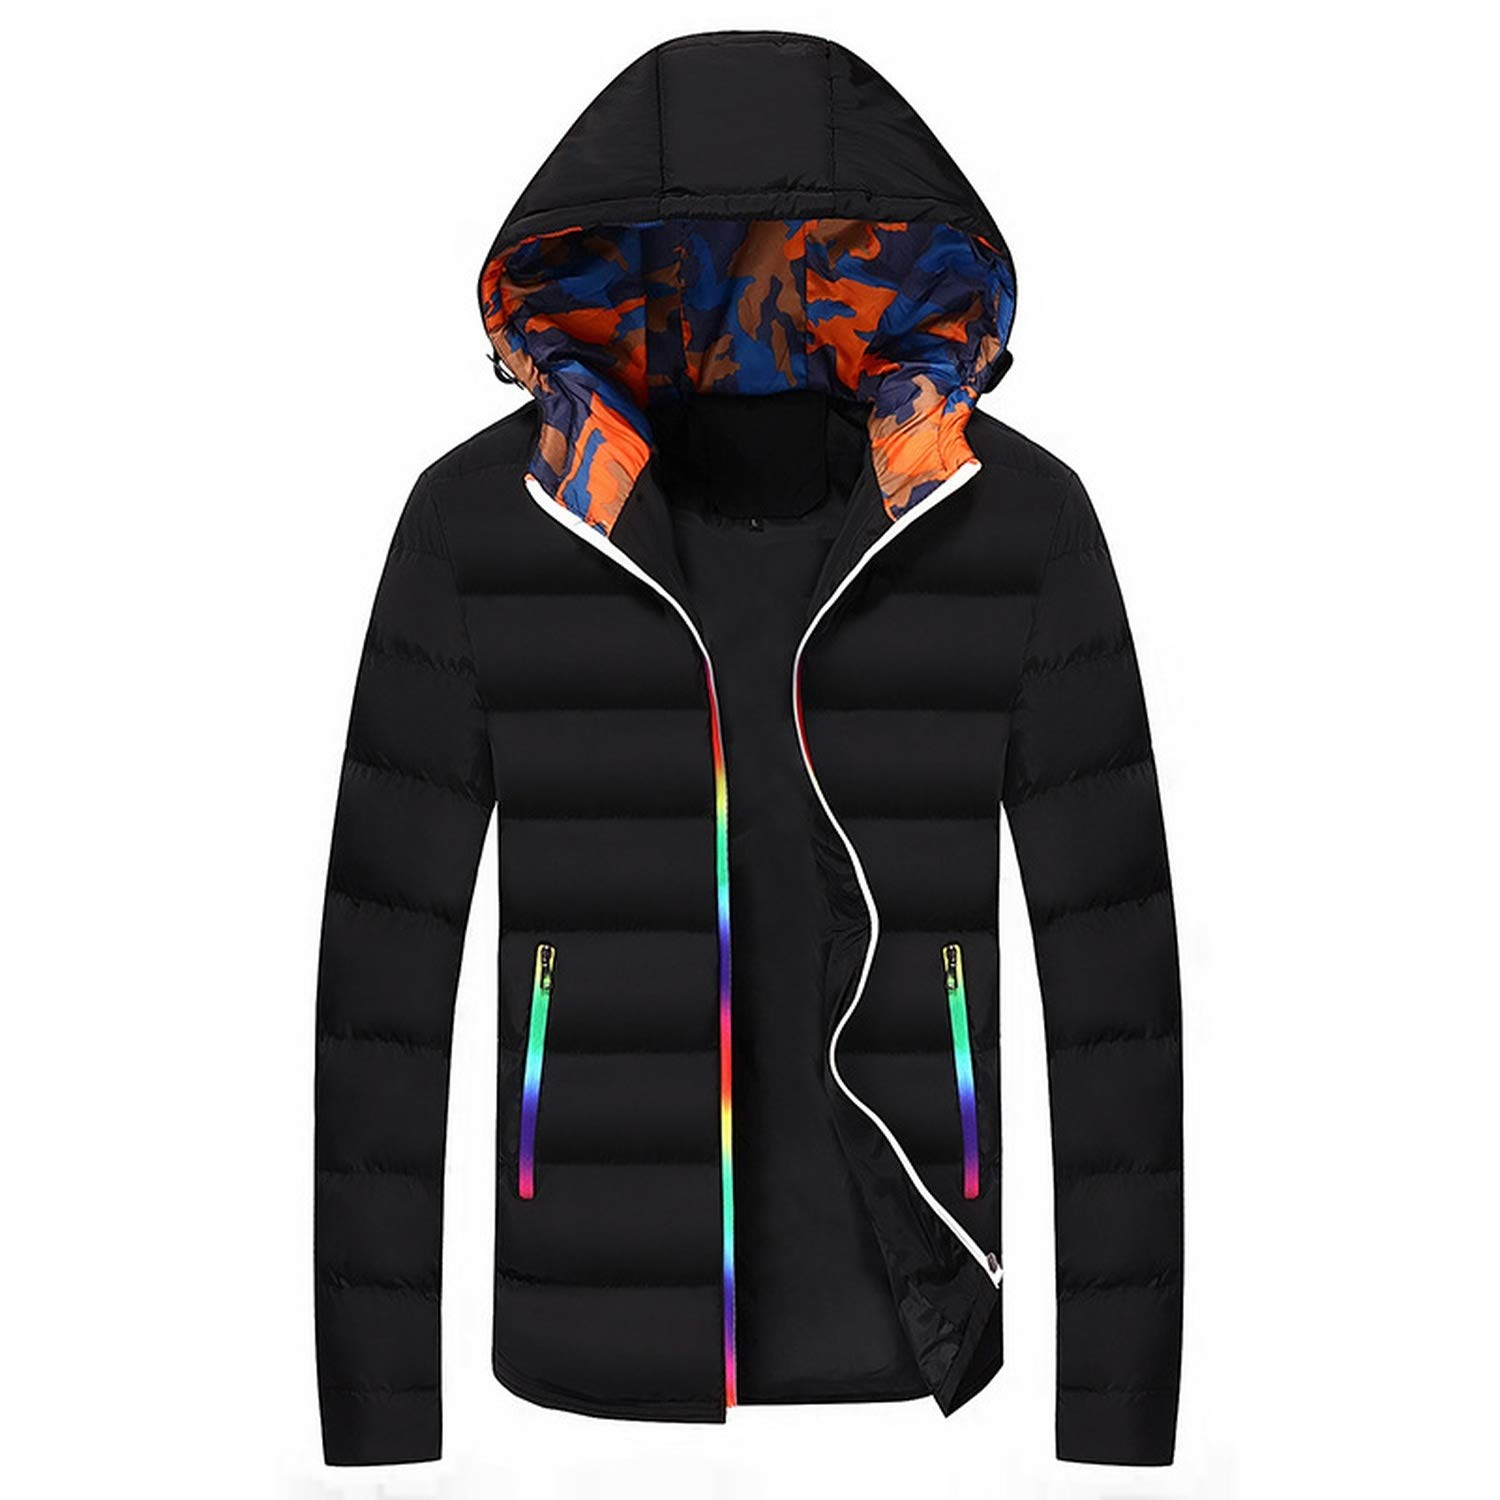 Love essentials Fashion coat Winter Jacket Men Casual Warm Hooded Coats Mens Jackets and Coats Parkas for Male 5XL